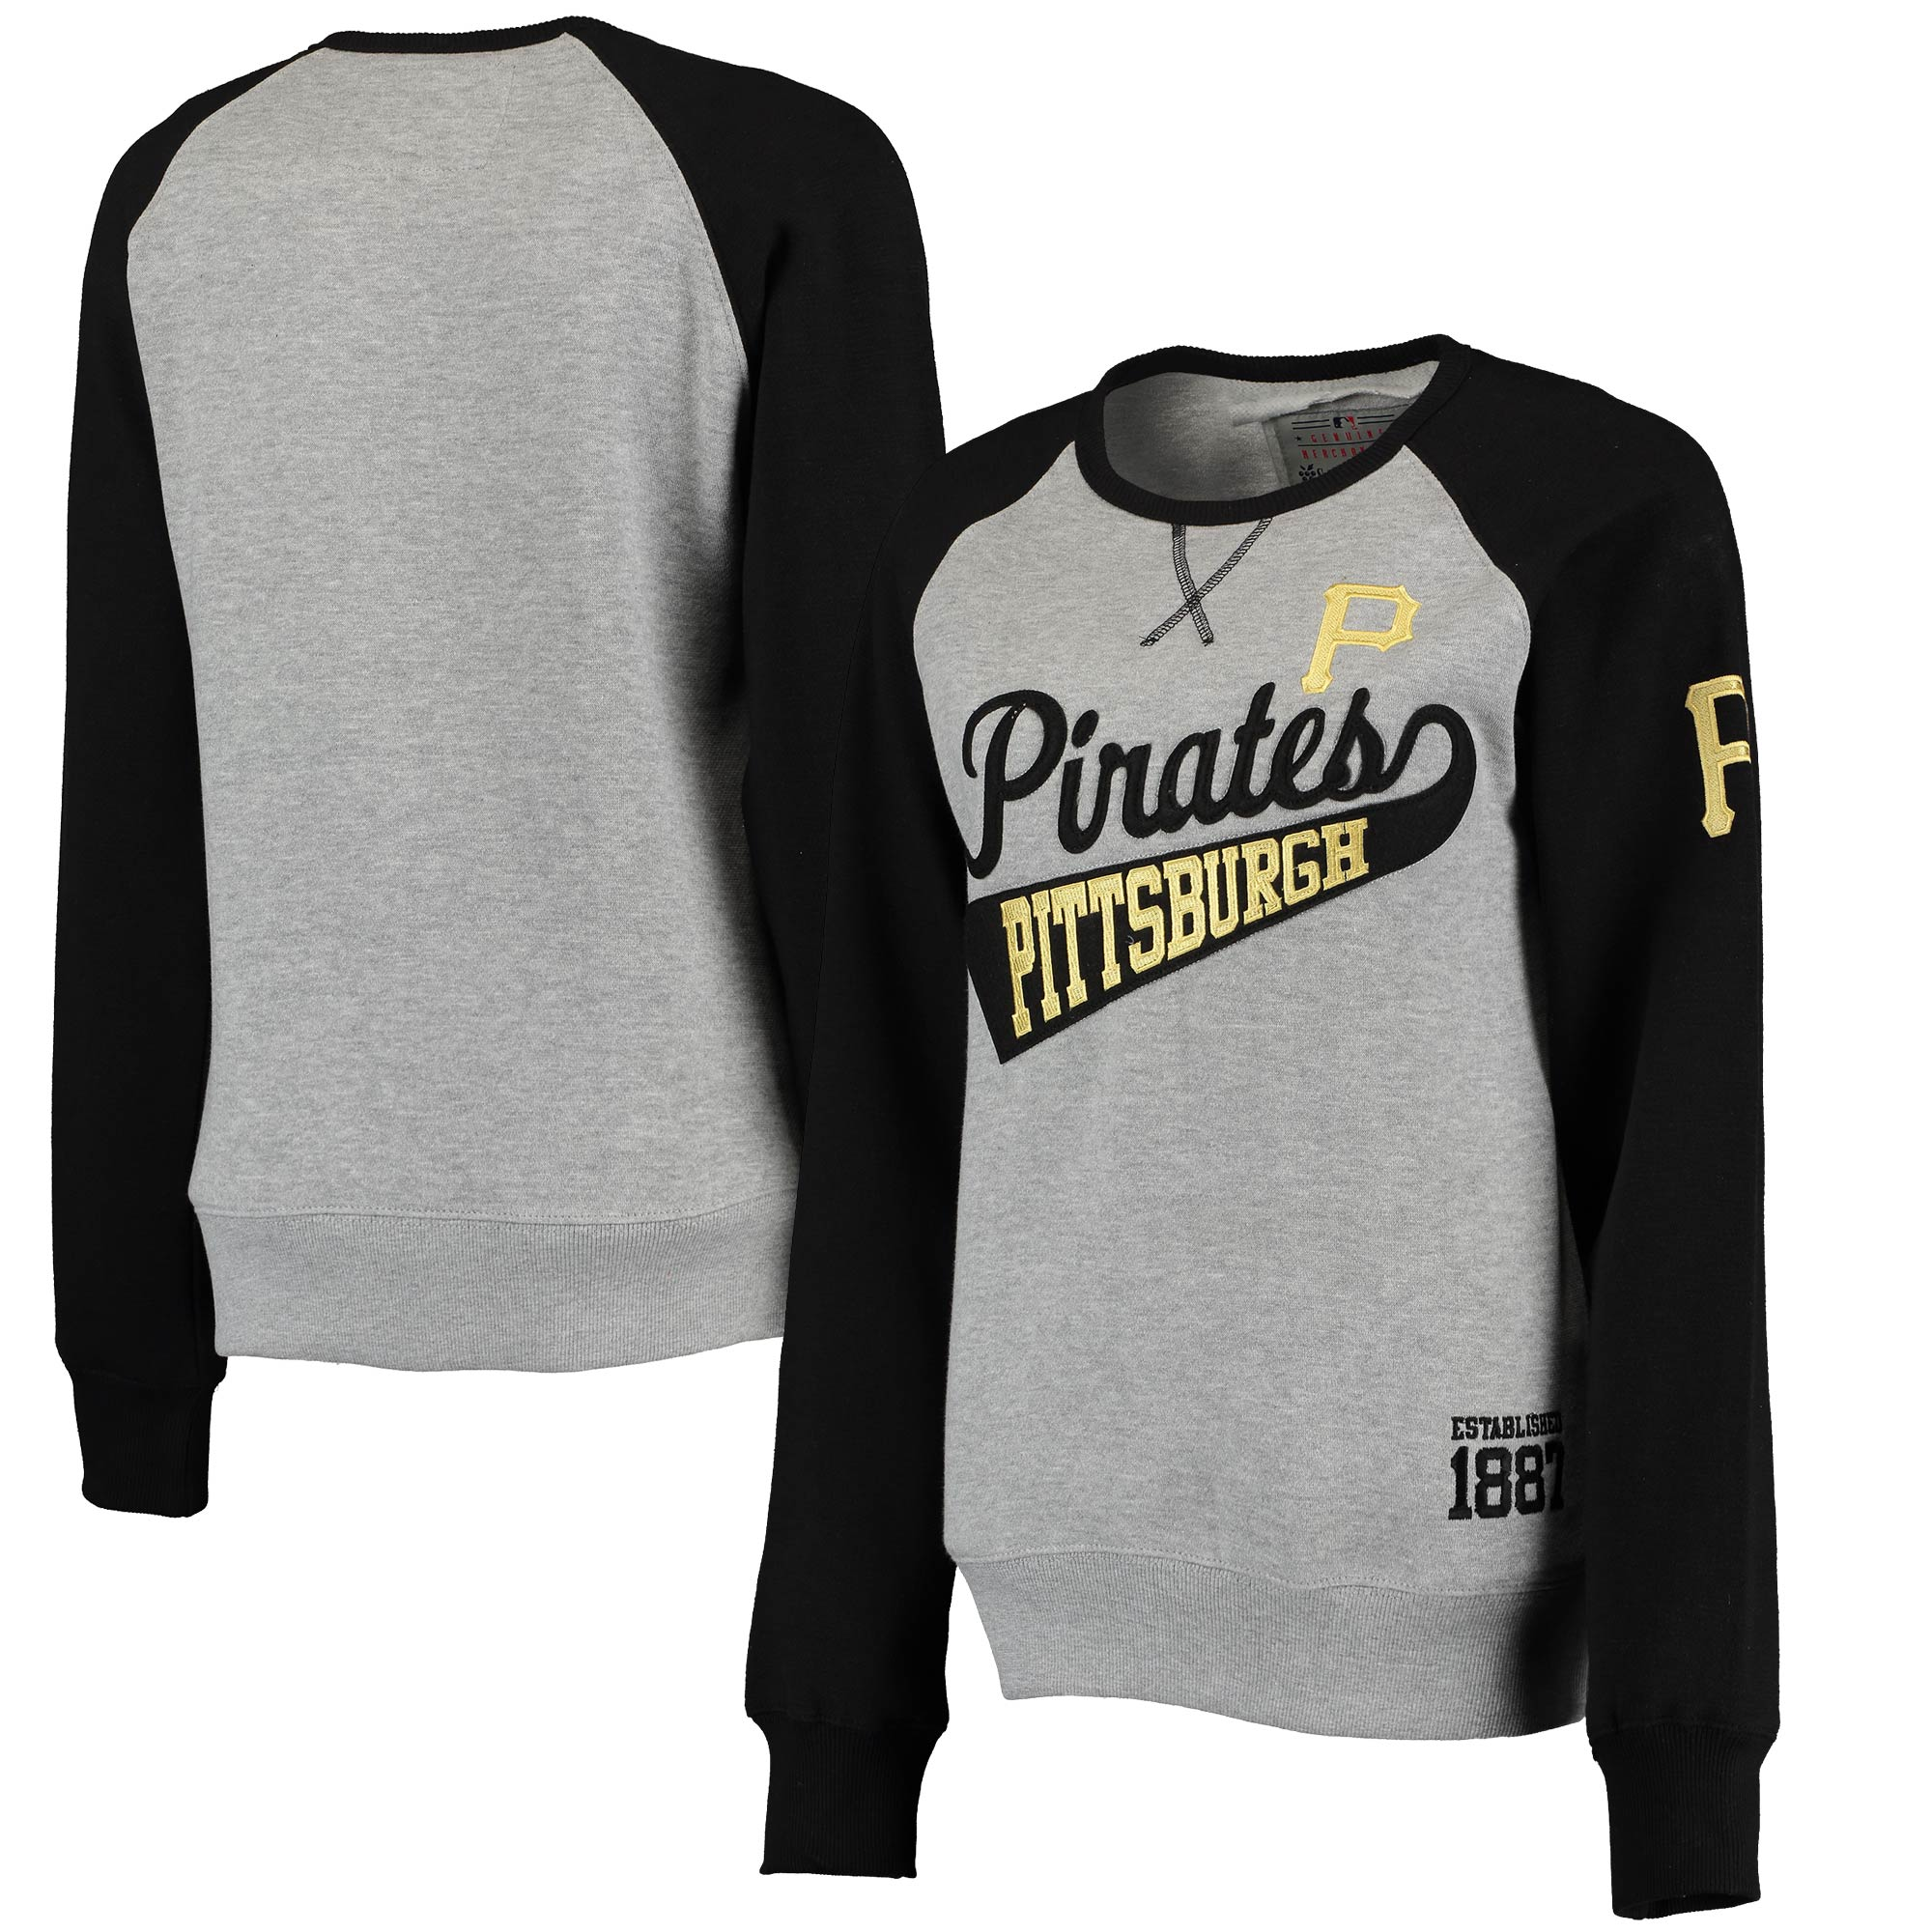 Pittsburgh Pirates Soft as a Grape Women's Biowashed Dugout Fleece Crew Neck Sweatshirt - Gray/Black